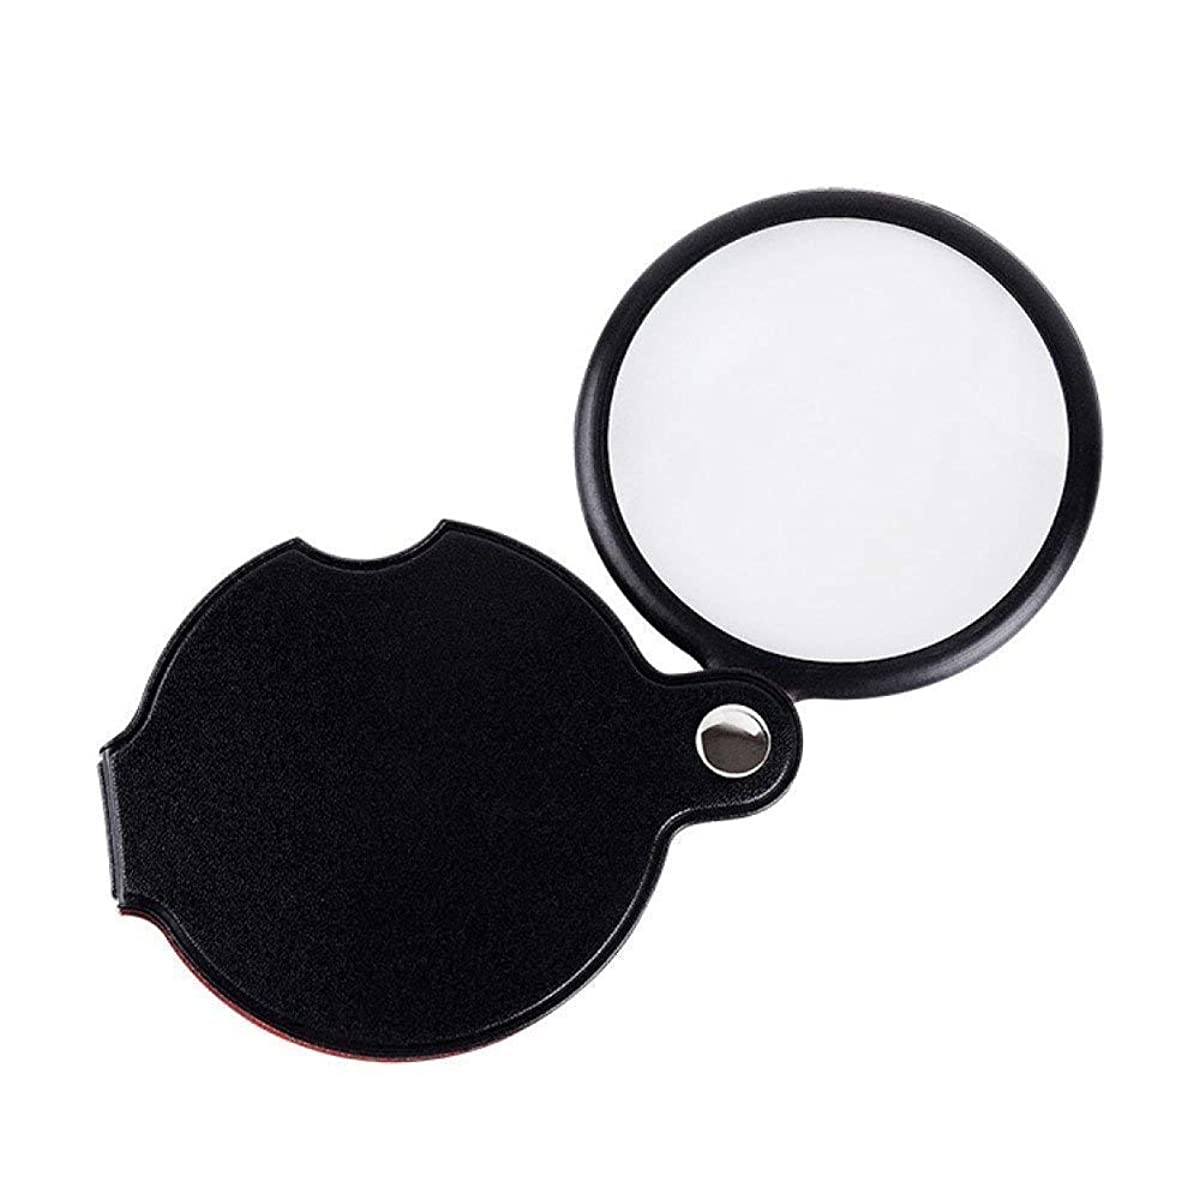 Portable Magnifier Handheld Mini Foldable Magnifier High-3X Clear Lens for Reading Jewelry Marking Watch DIY Craft Engraving and Repair - Black 60 150mm Personalized Desktop Reading Magnifier